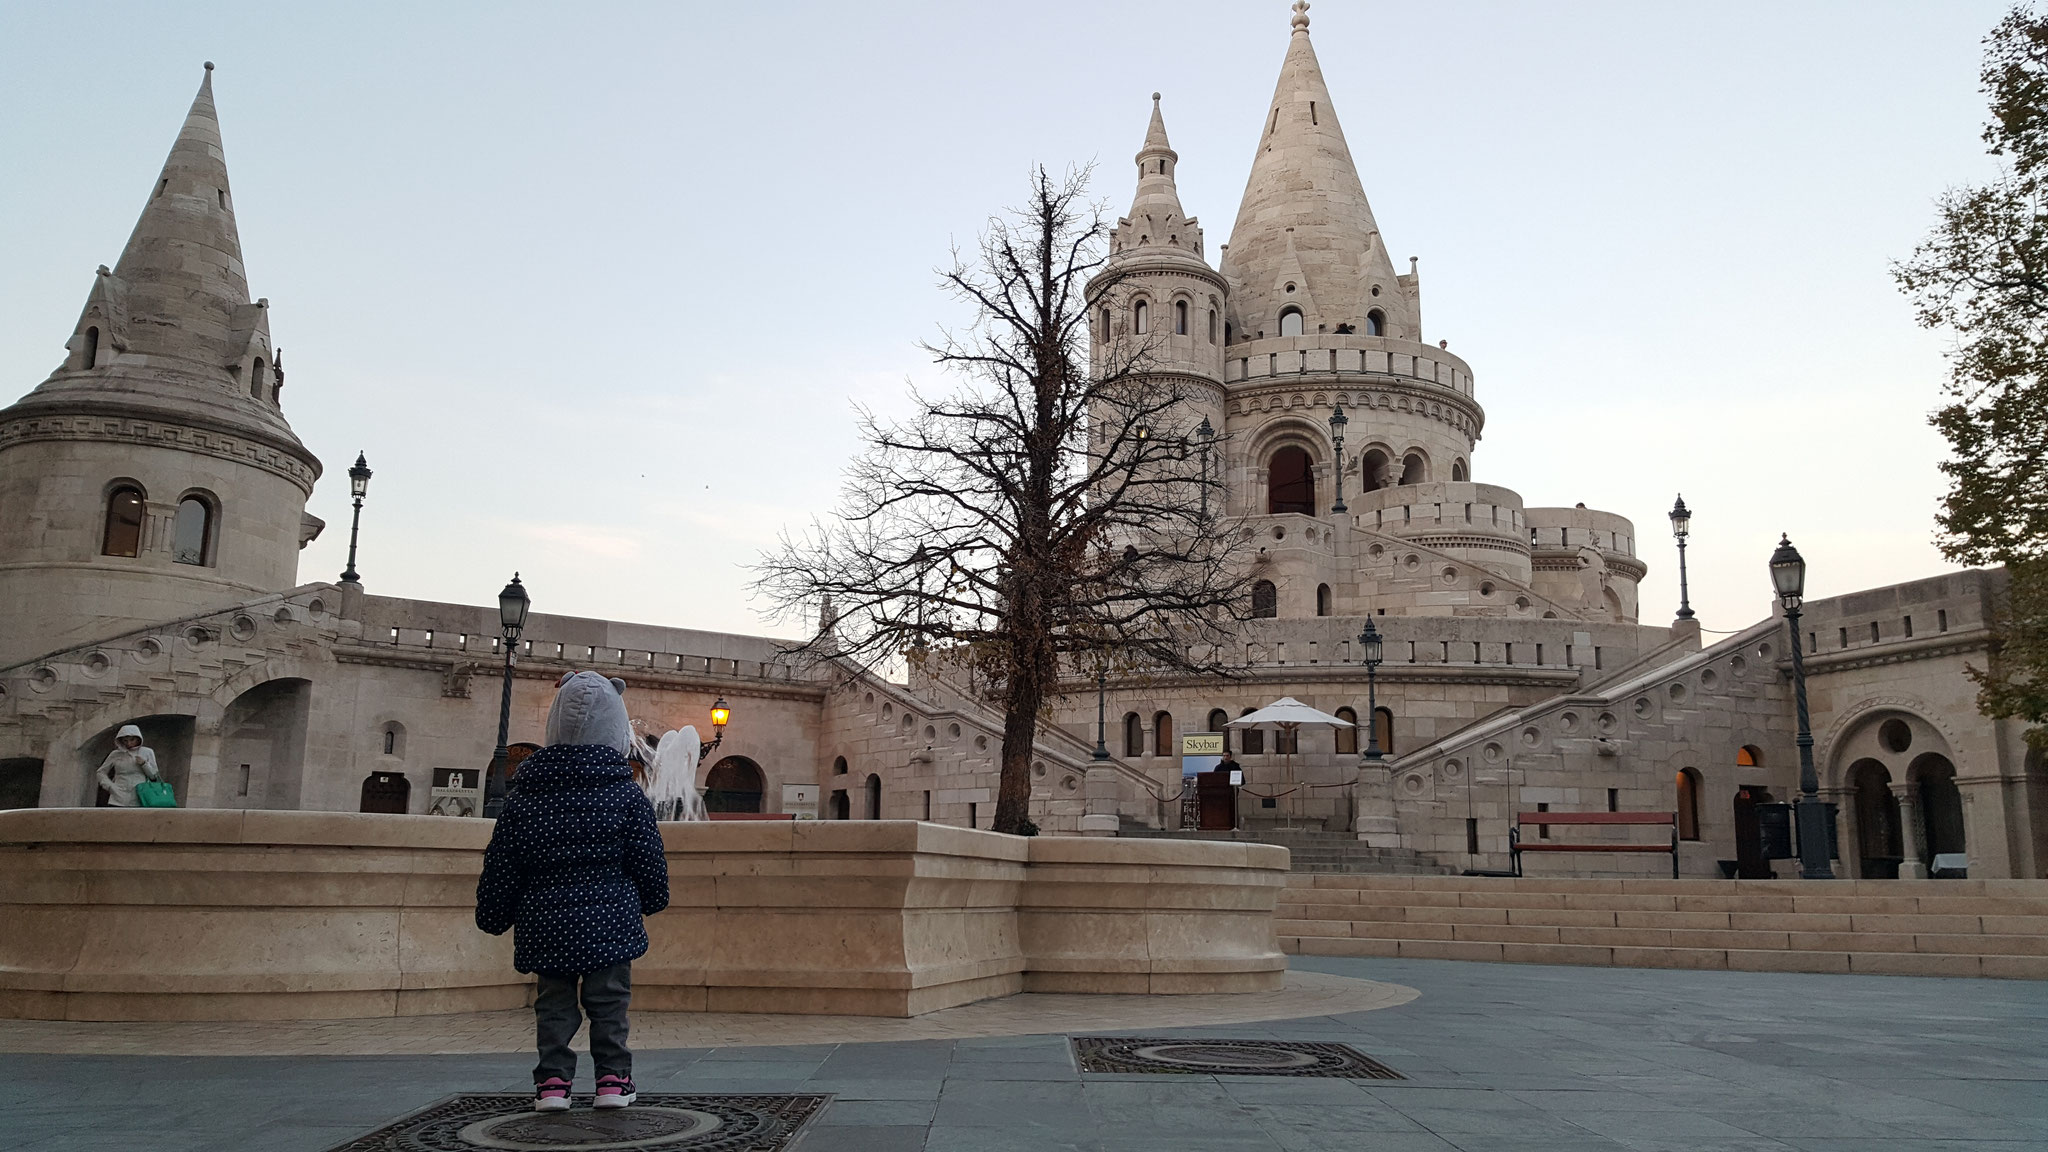 ...Sightseeing in Budapest...